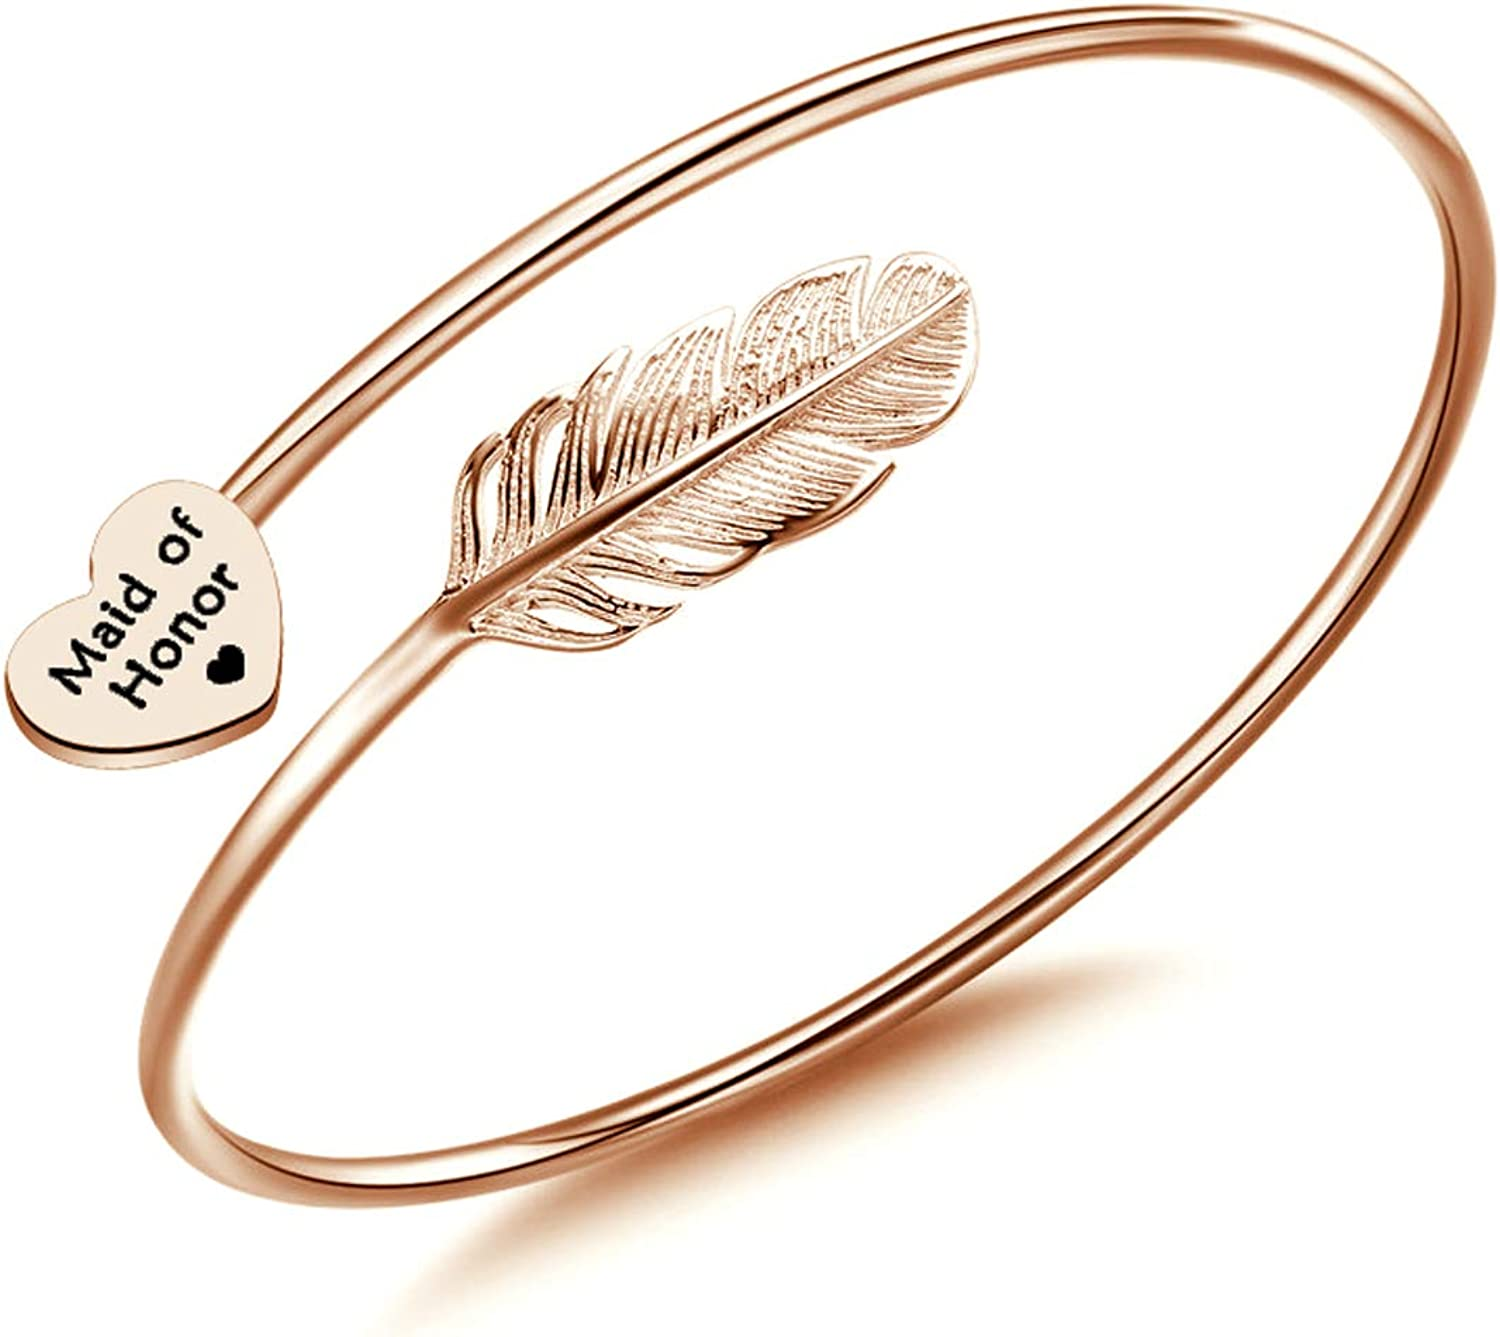 CHOORO Maid of Honor Wedding Feather Free shipping Omaha Mall anywhere in the nation Leaf Ban Jewelry Adjustable